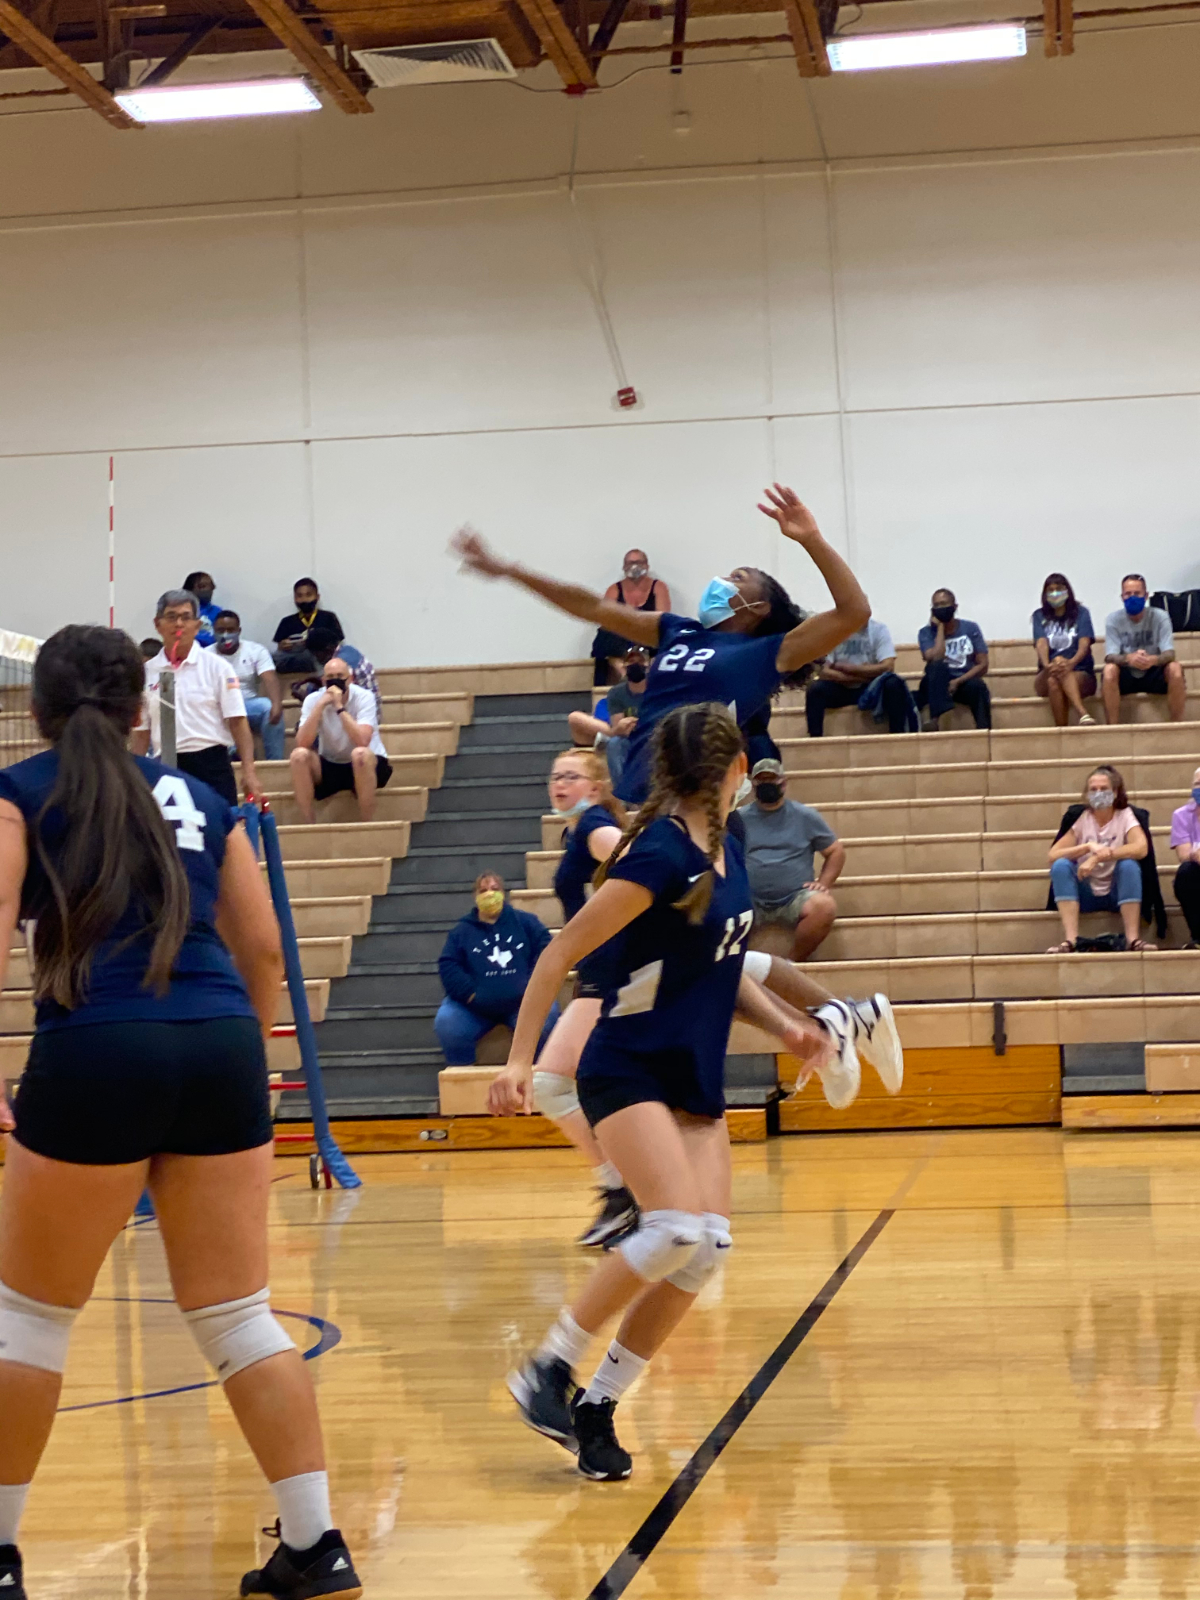 Lady Cougars Go 3-1 Against North Belton At Home